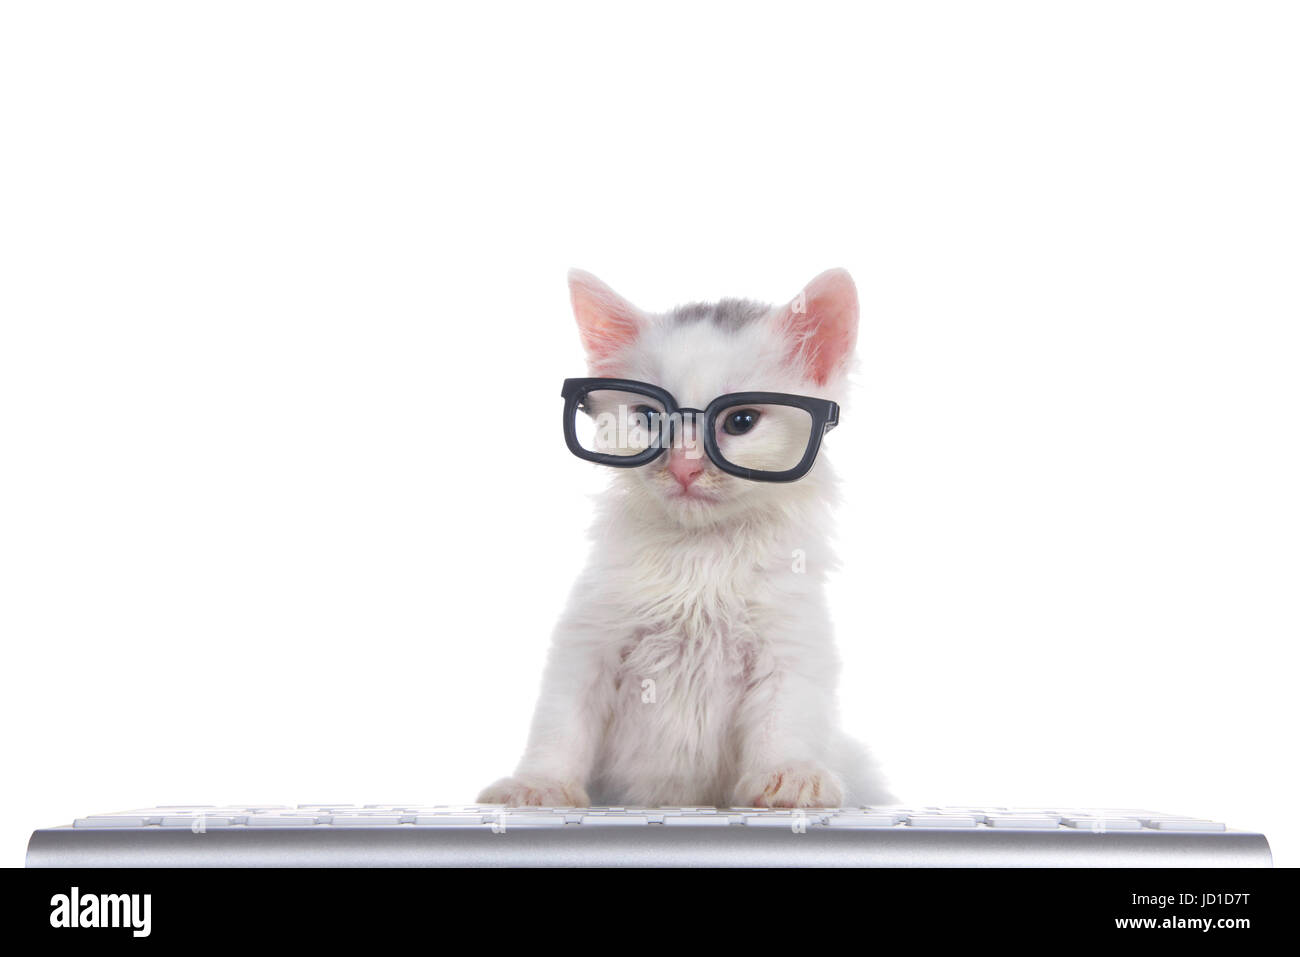 One cute adorable fluffy white kitten wearing black geeky glasses looking slightly to viewers left, sitting in front - Stock Image